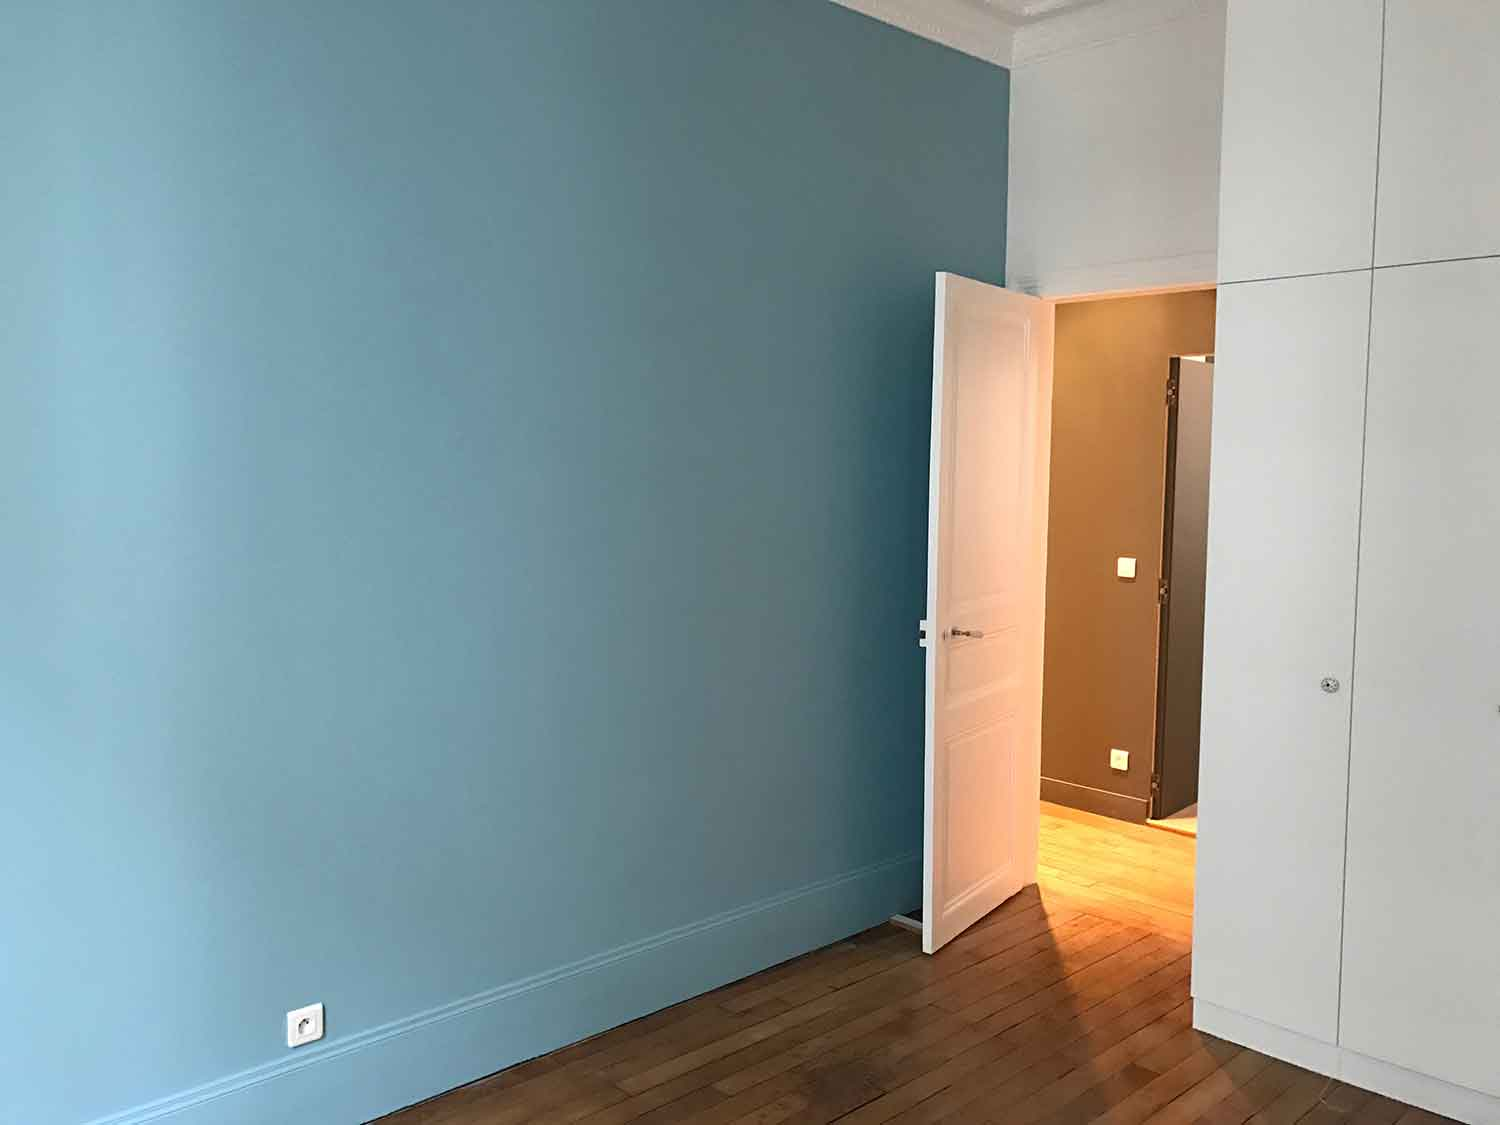 Appartement-rue-de-la-convention-Paris-127m2---copie